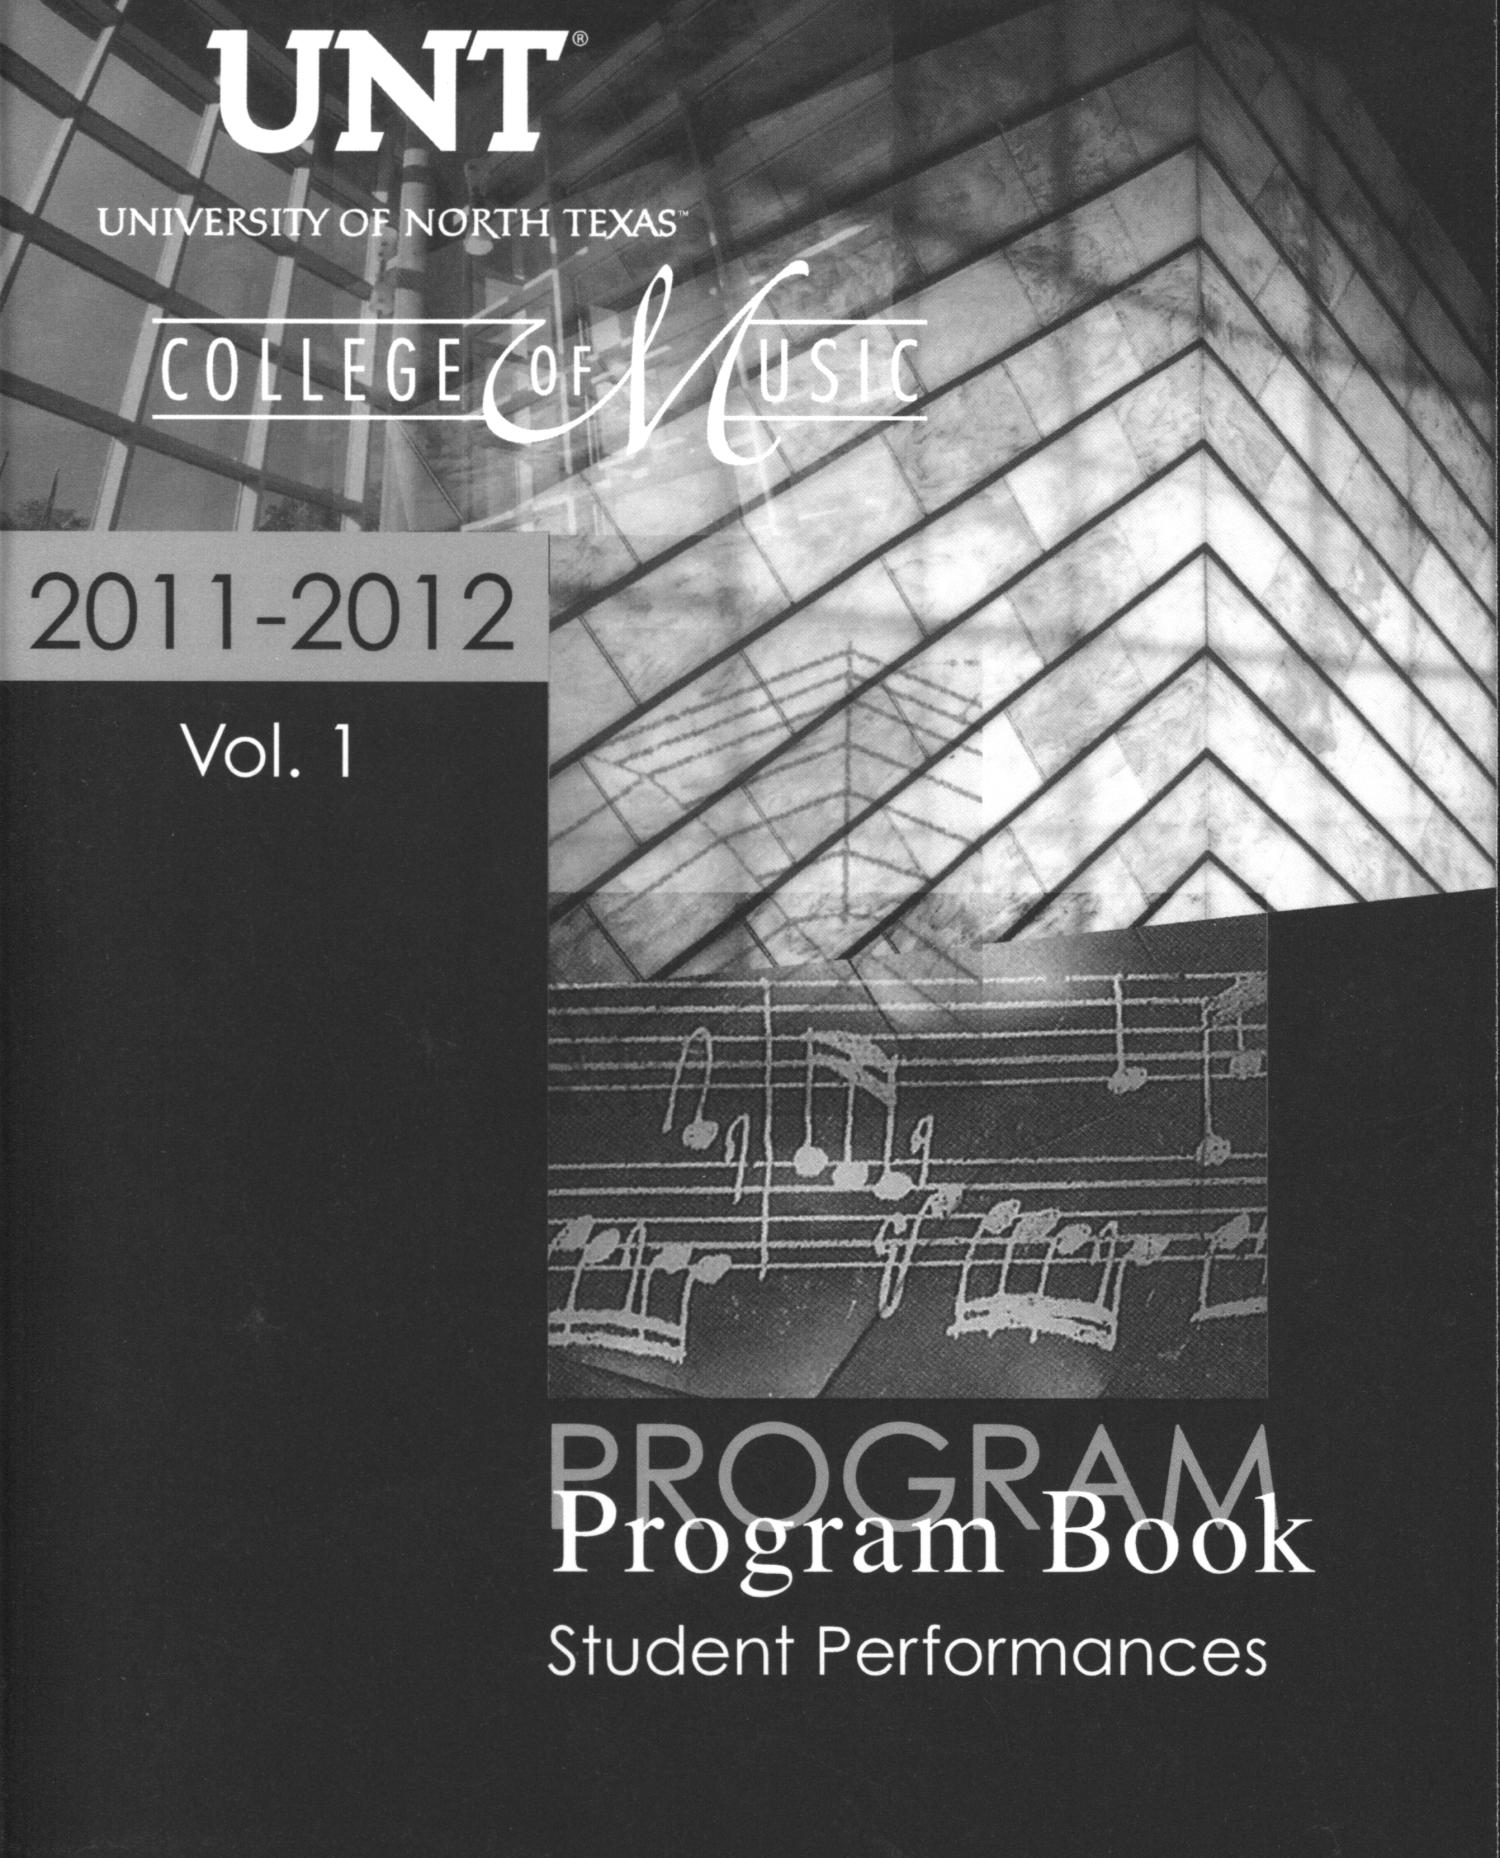 College of Music Program Book 2011-2012: Student Performances, Volume 1                                                                                                      Front Cover